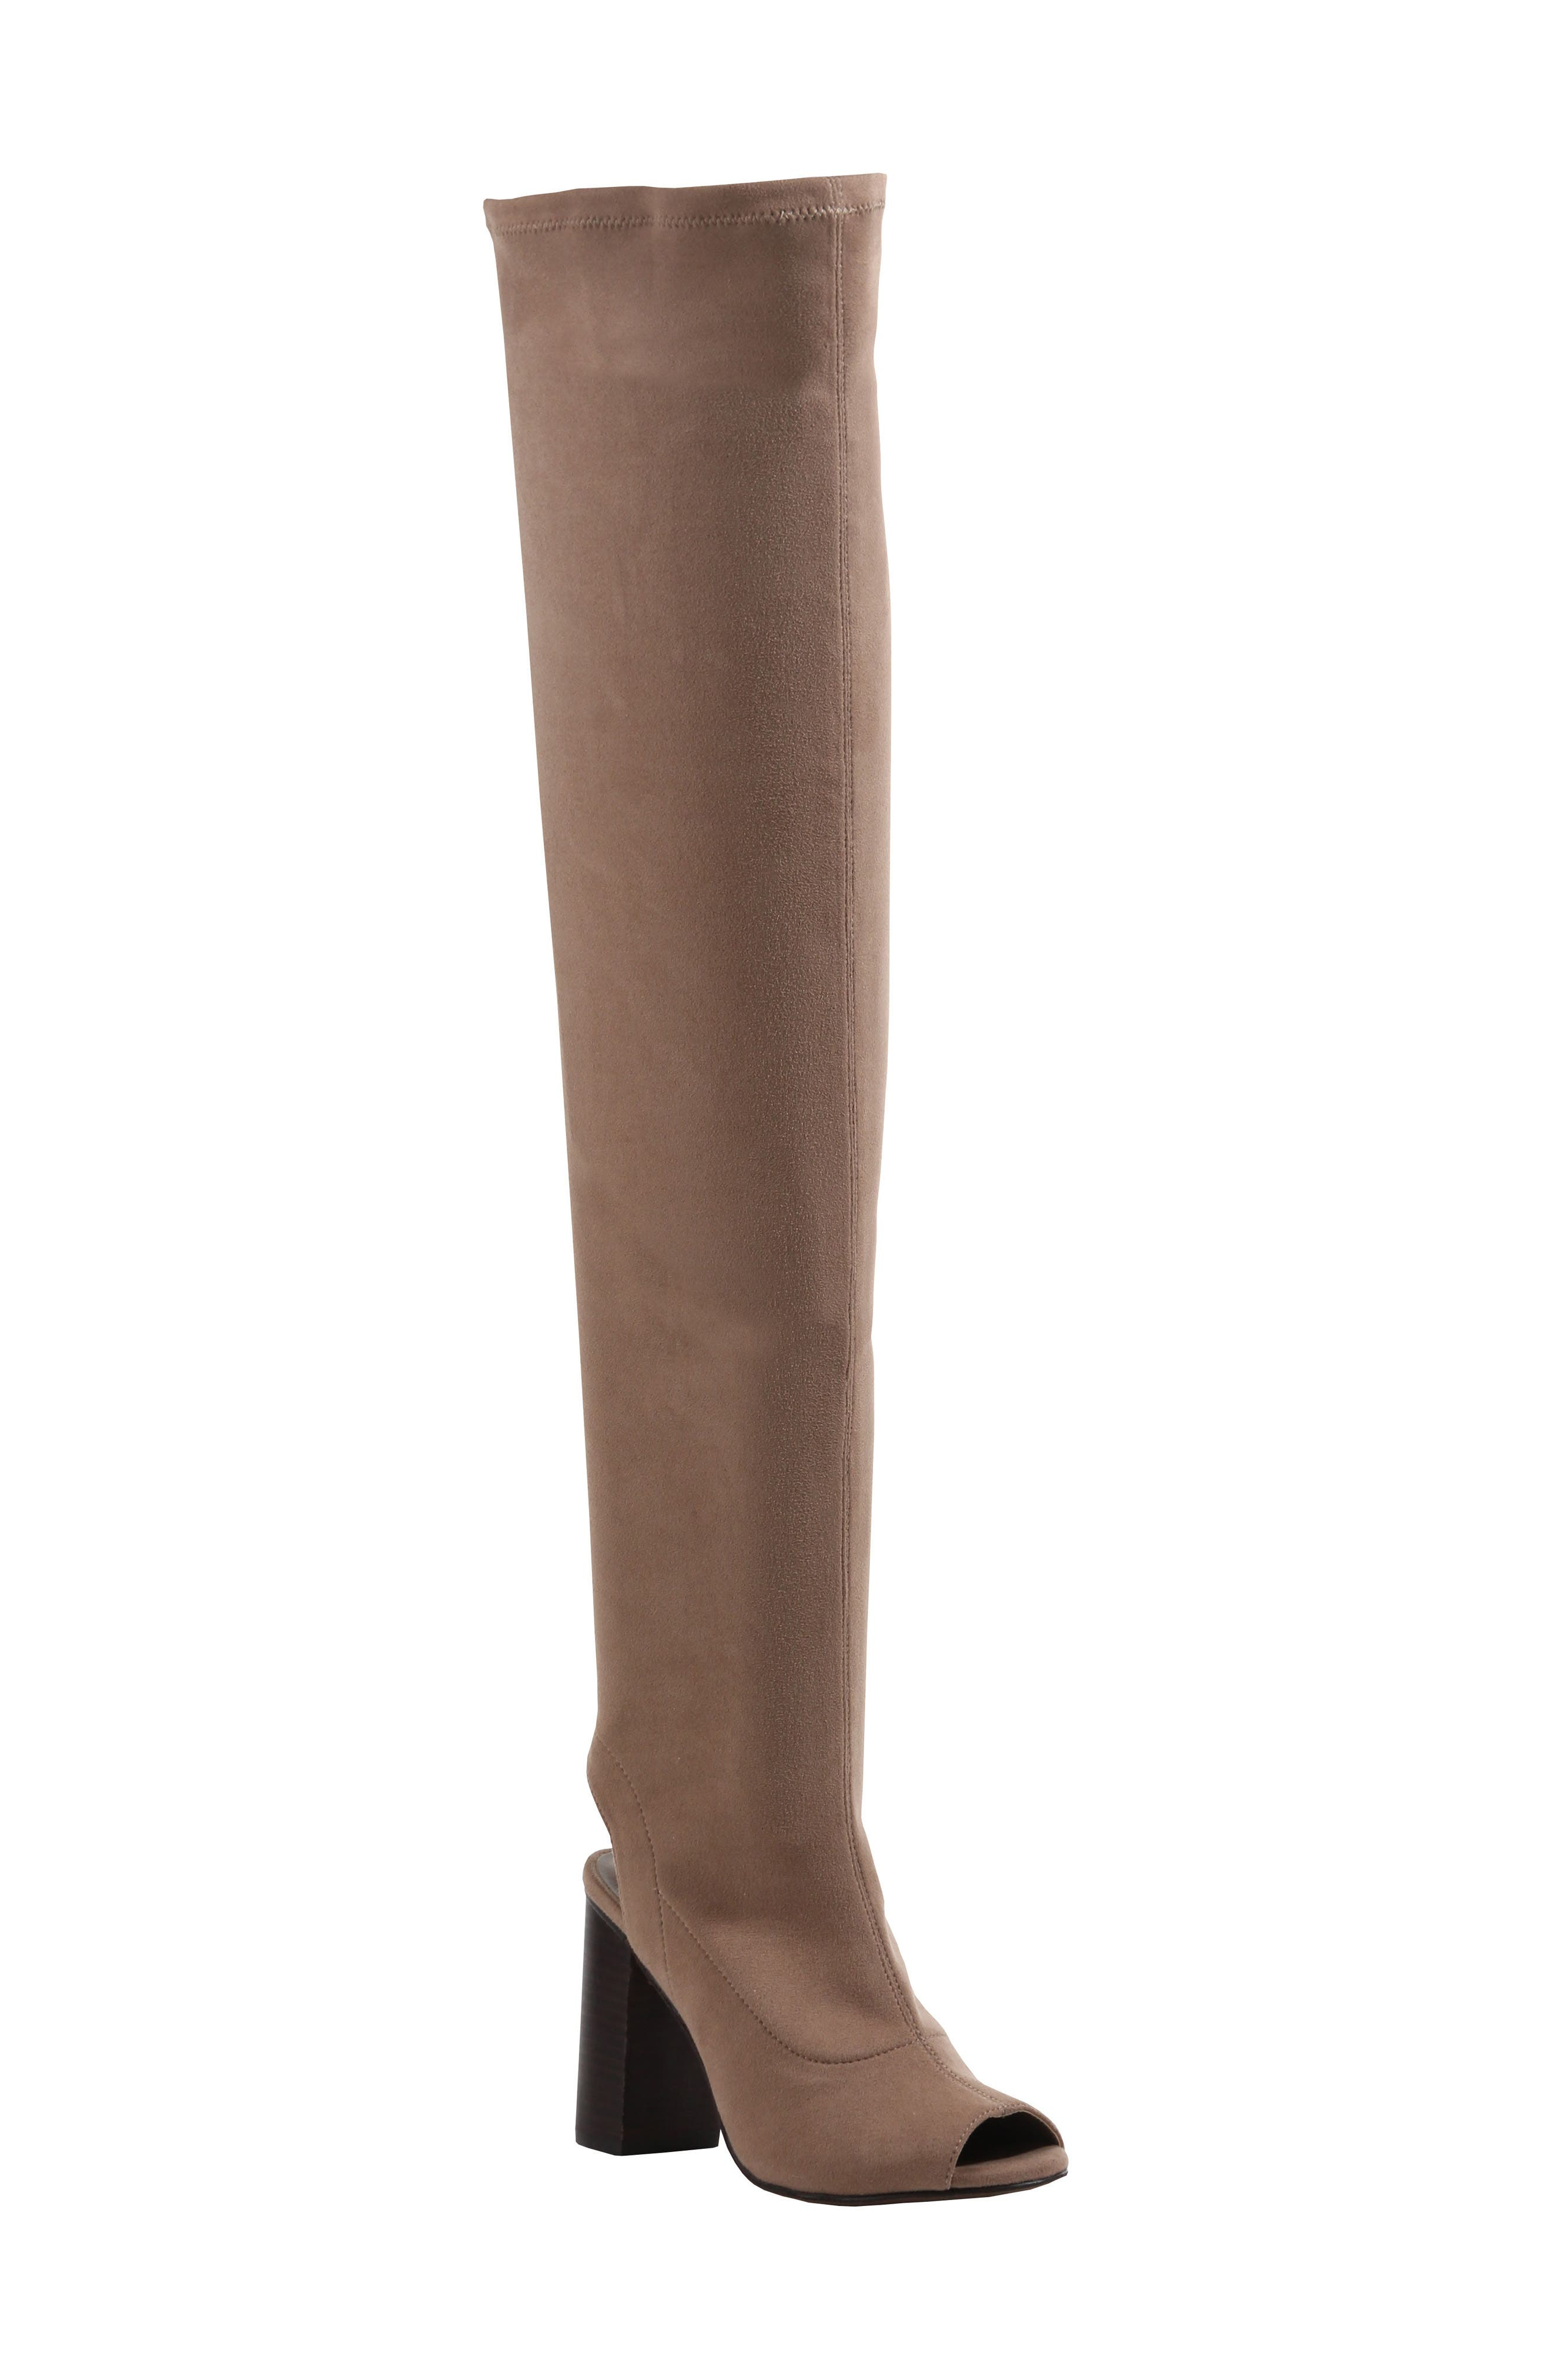 Alternate Image 1 Selected - Mia Robyn Cutout Over the Knee Boot (Women)